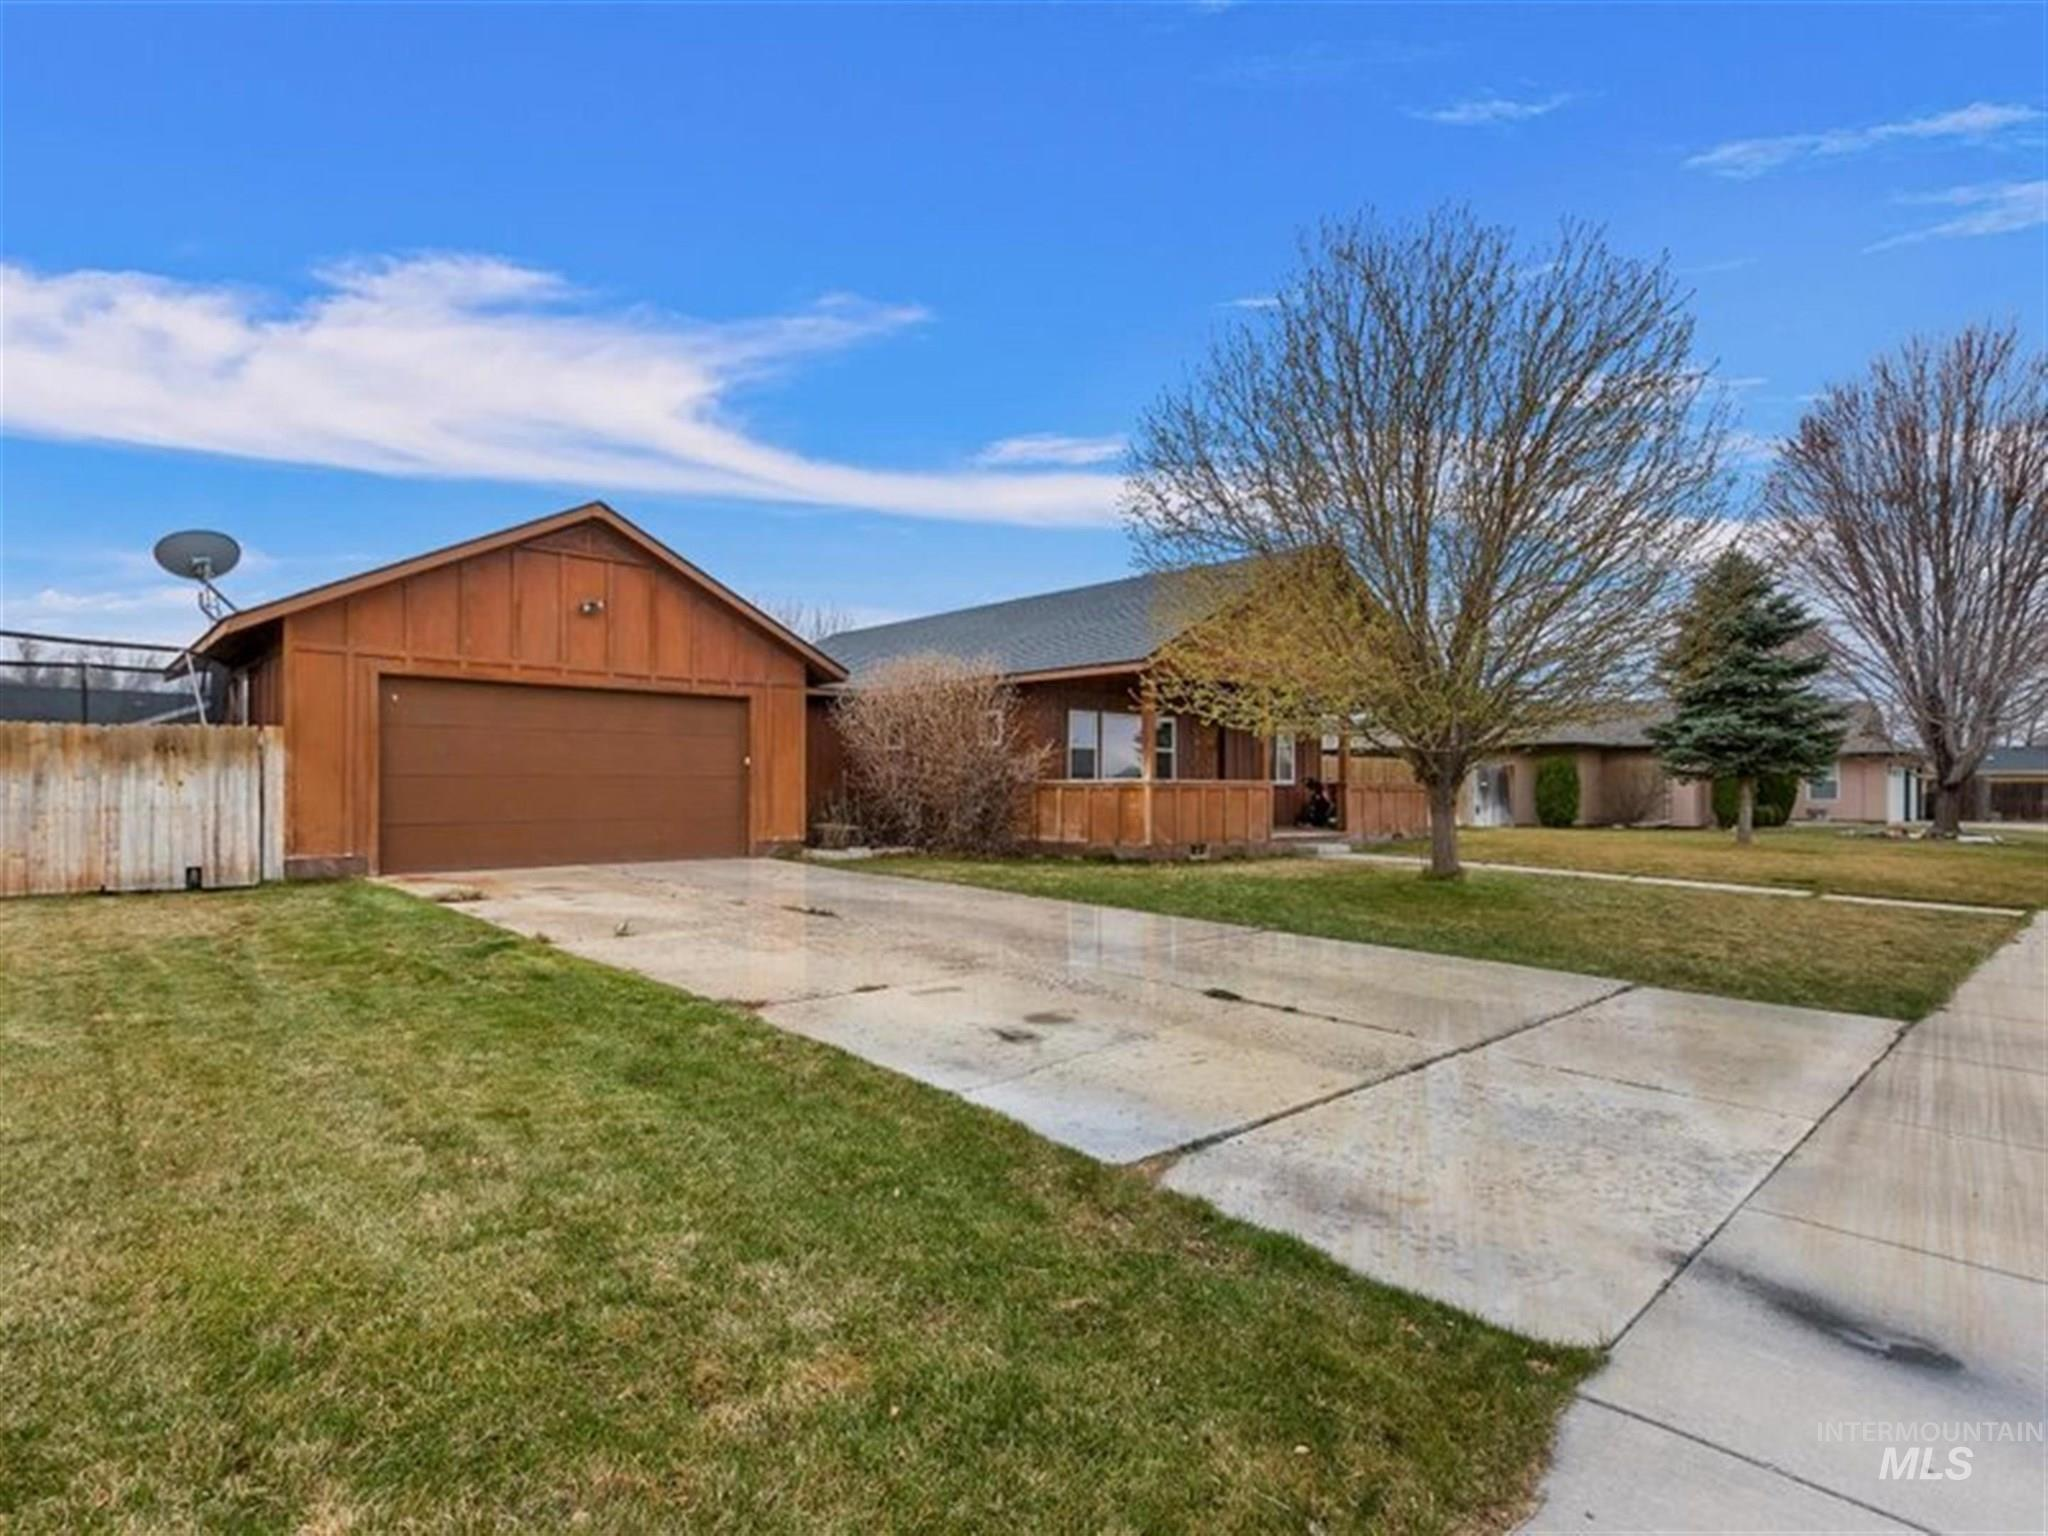 103 Sunset Dr Property Photo - Shoshone, ID real estate listing